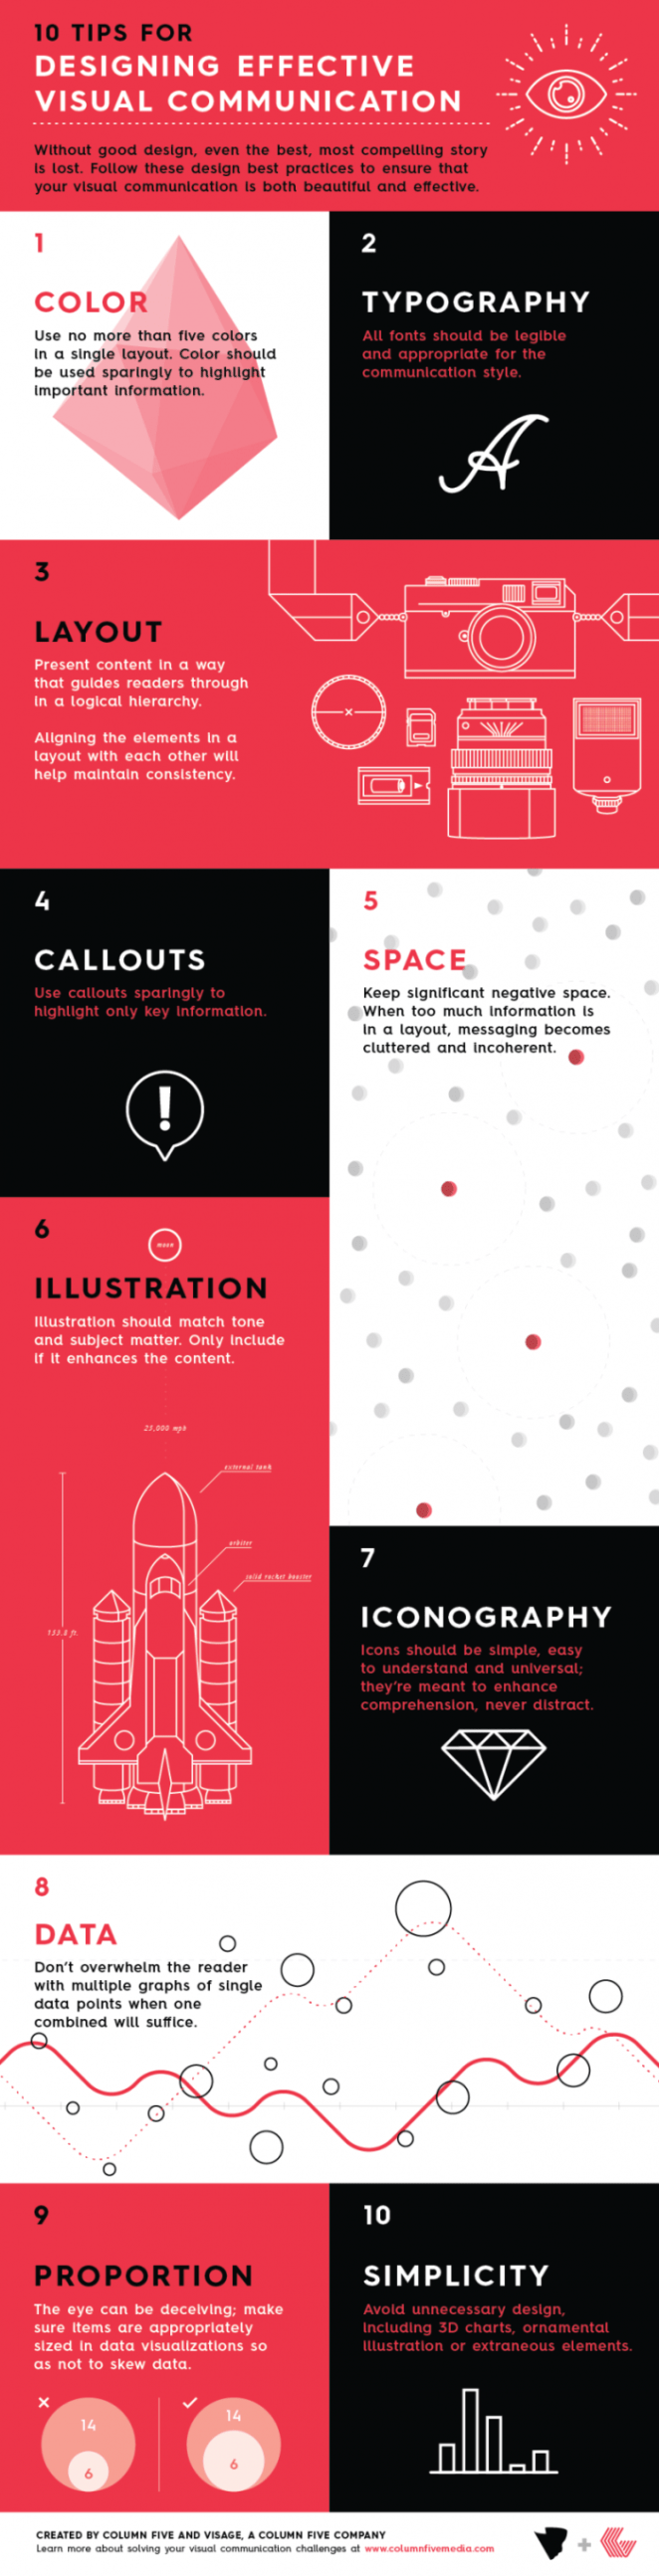 10 Tips for Achieving Great Design - Infographic - Girly Design Blog